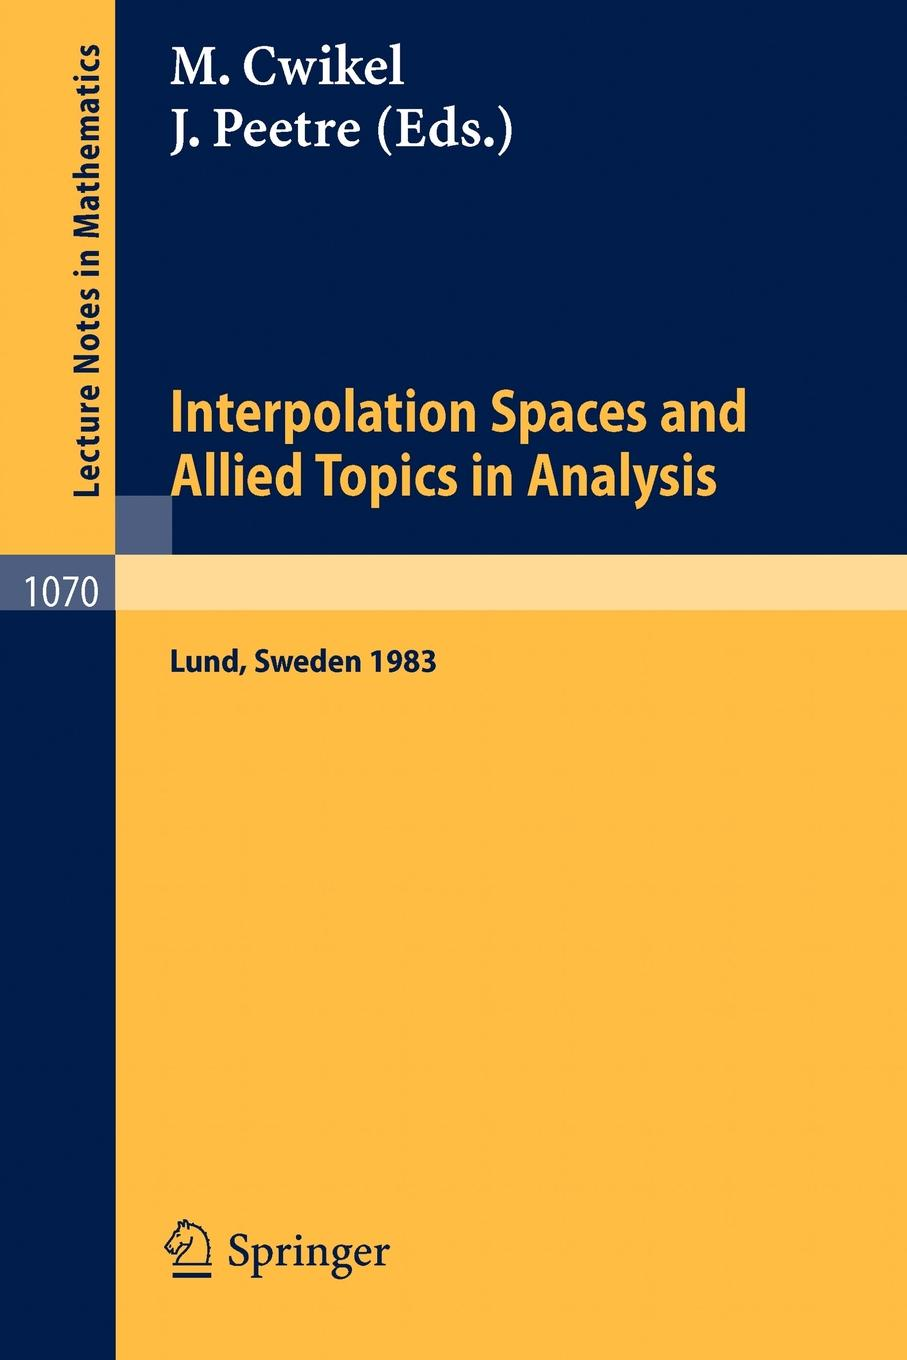 Interpolation Spaces and Allied Topics in Analysis. Proceedings of the Conference Held in Lund, Sweden, August 29 - September 1, 1983 цена и фото